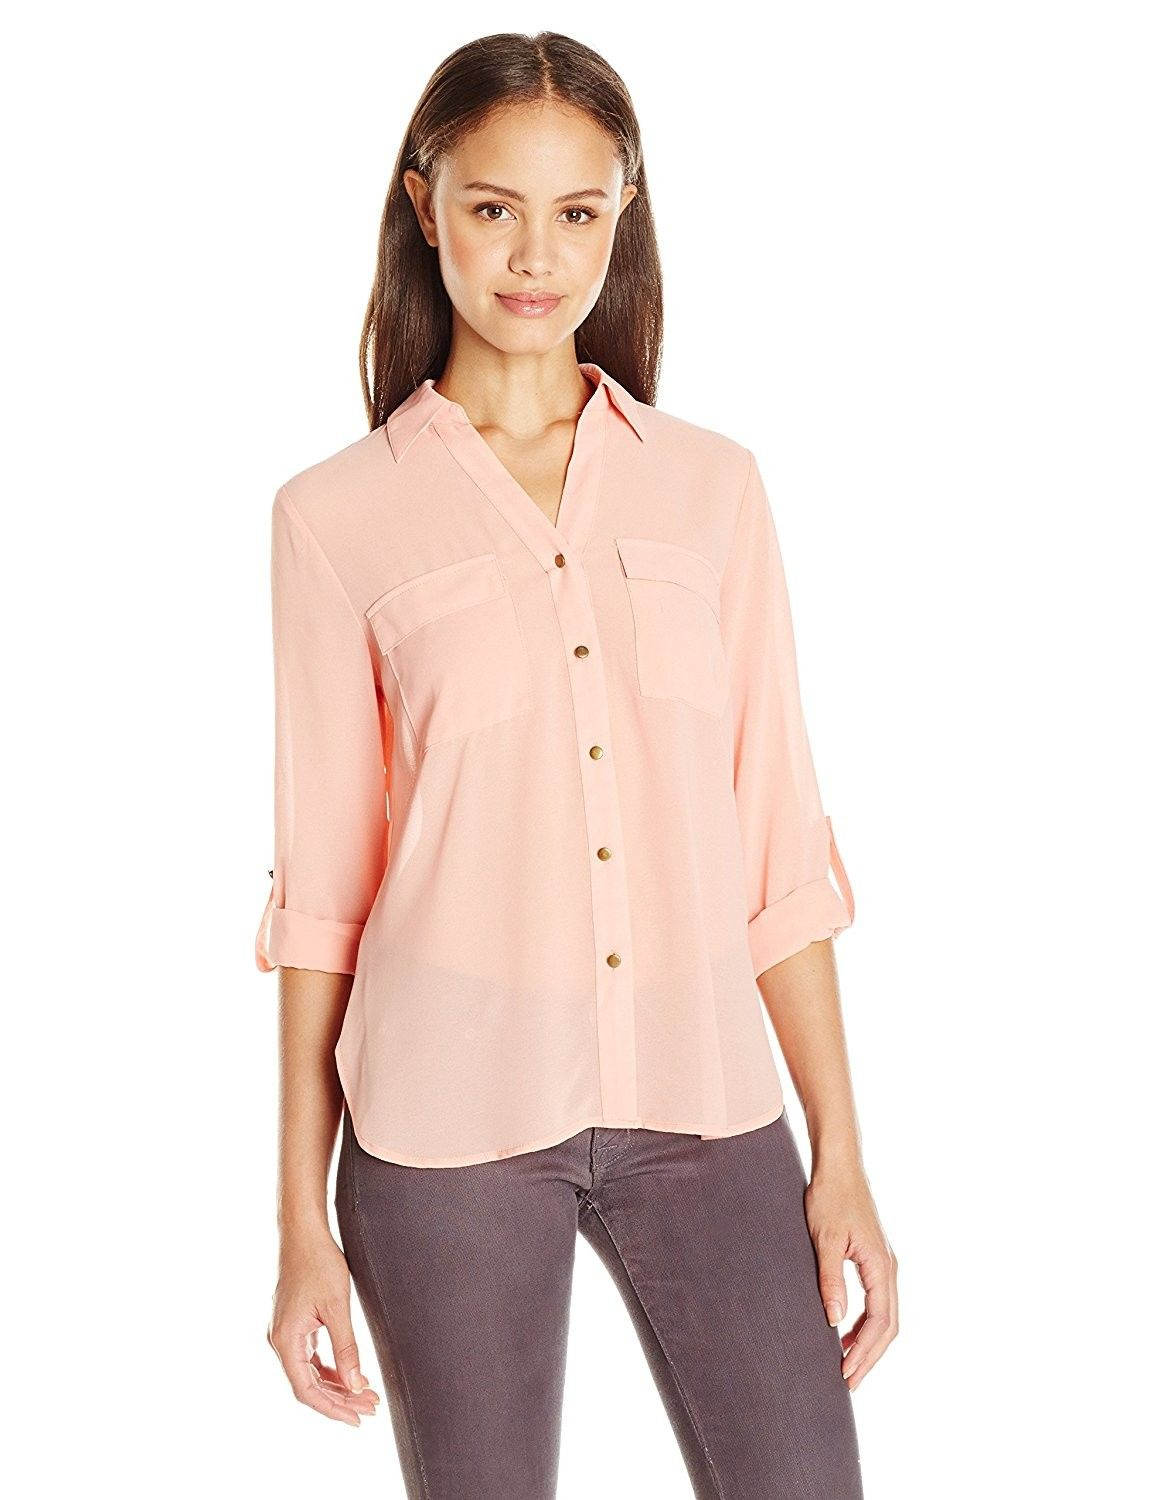 d989f932 Juniors Sheer Collared Button Front Tops with Front Pockets and Zip Back -  Salmon - CP12GTBZDPH,Women's Clothing, Tops & Tees, Blouses & Button-Down  Shirts ...